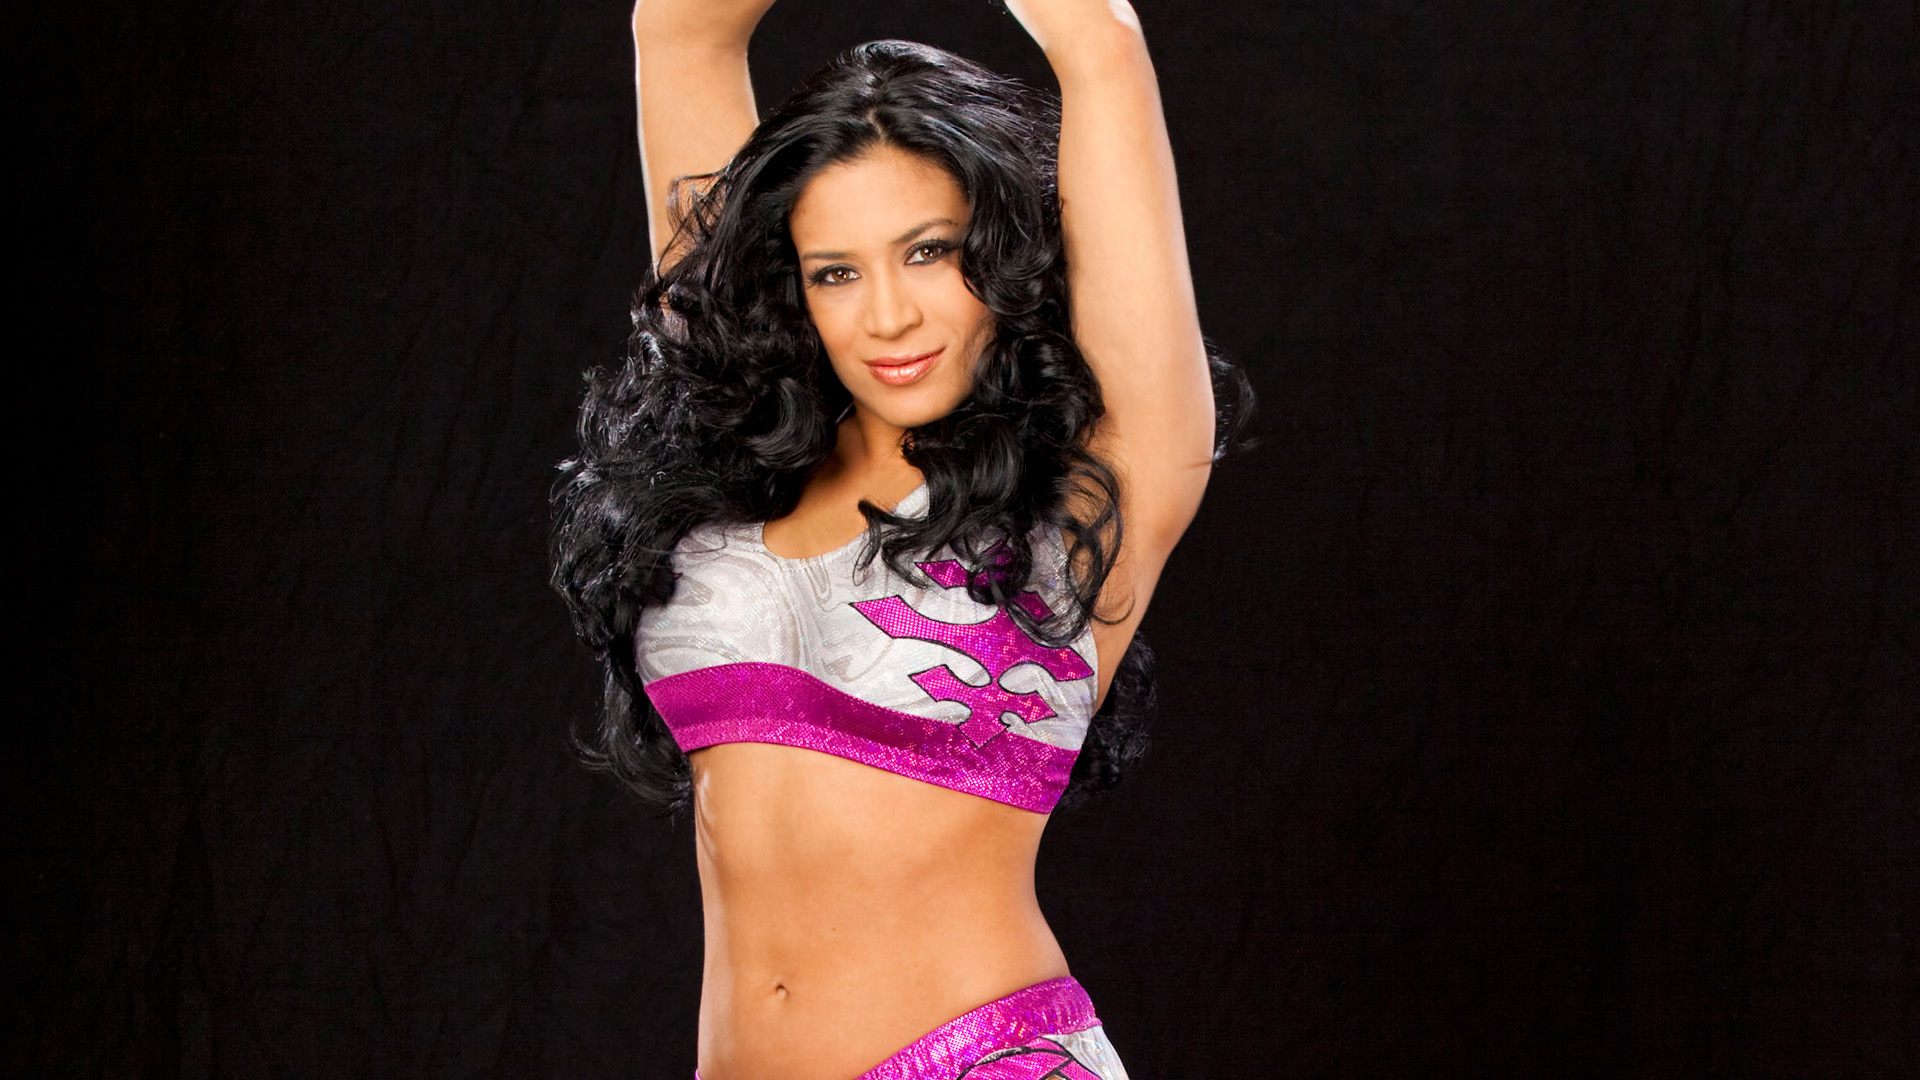 meLina - Melina Perez Wallpaper (20678310) - Fanpop fanclubs